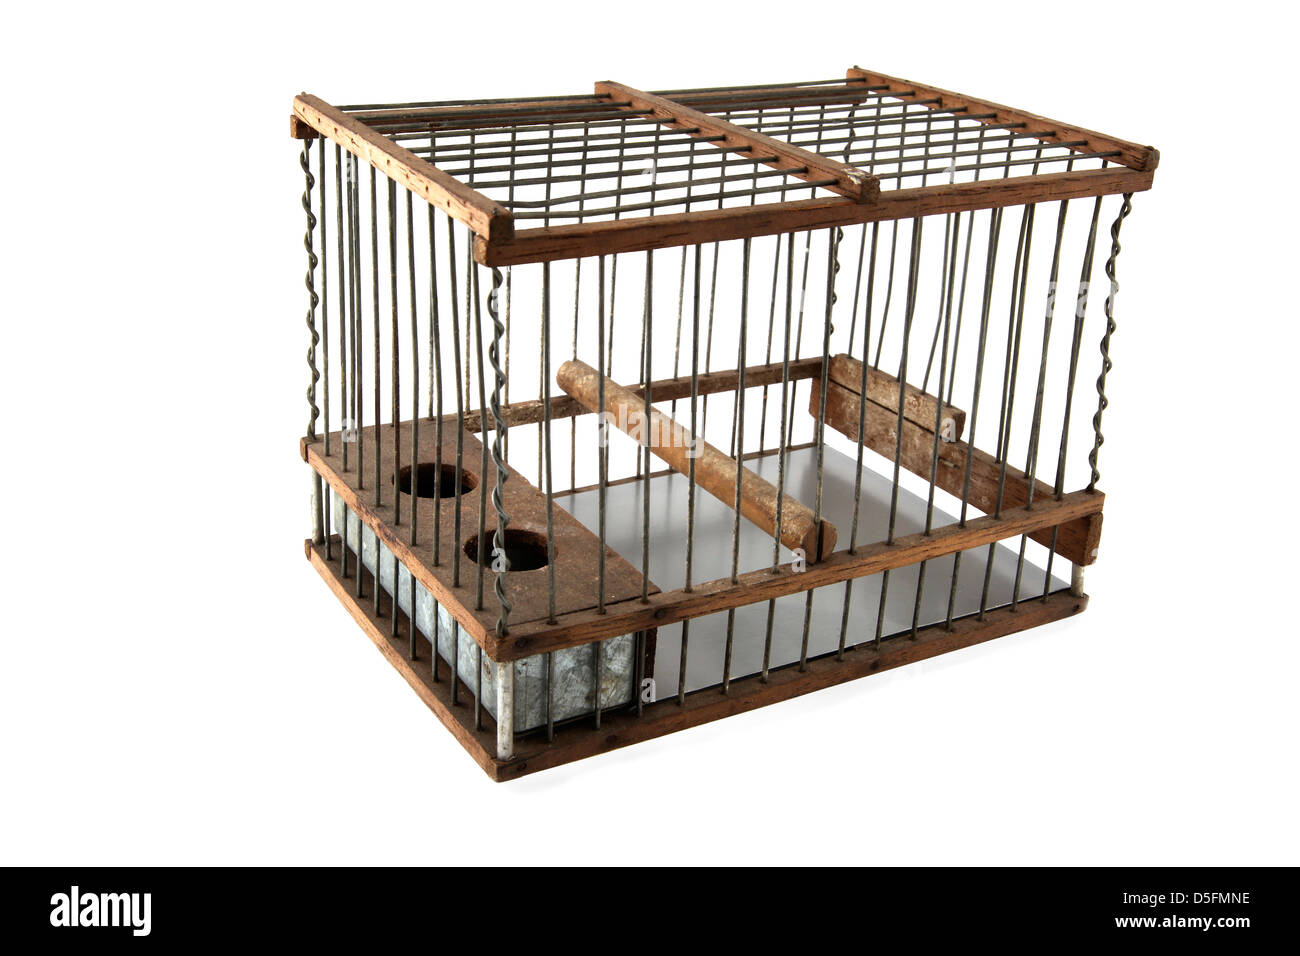 Cage containing birds, silhouetted against white background - Stock Image